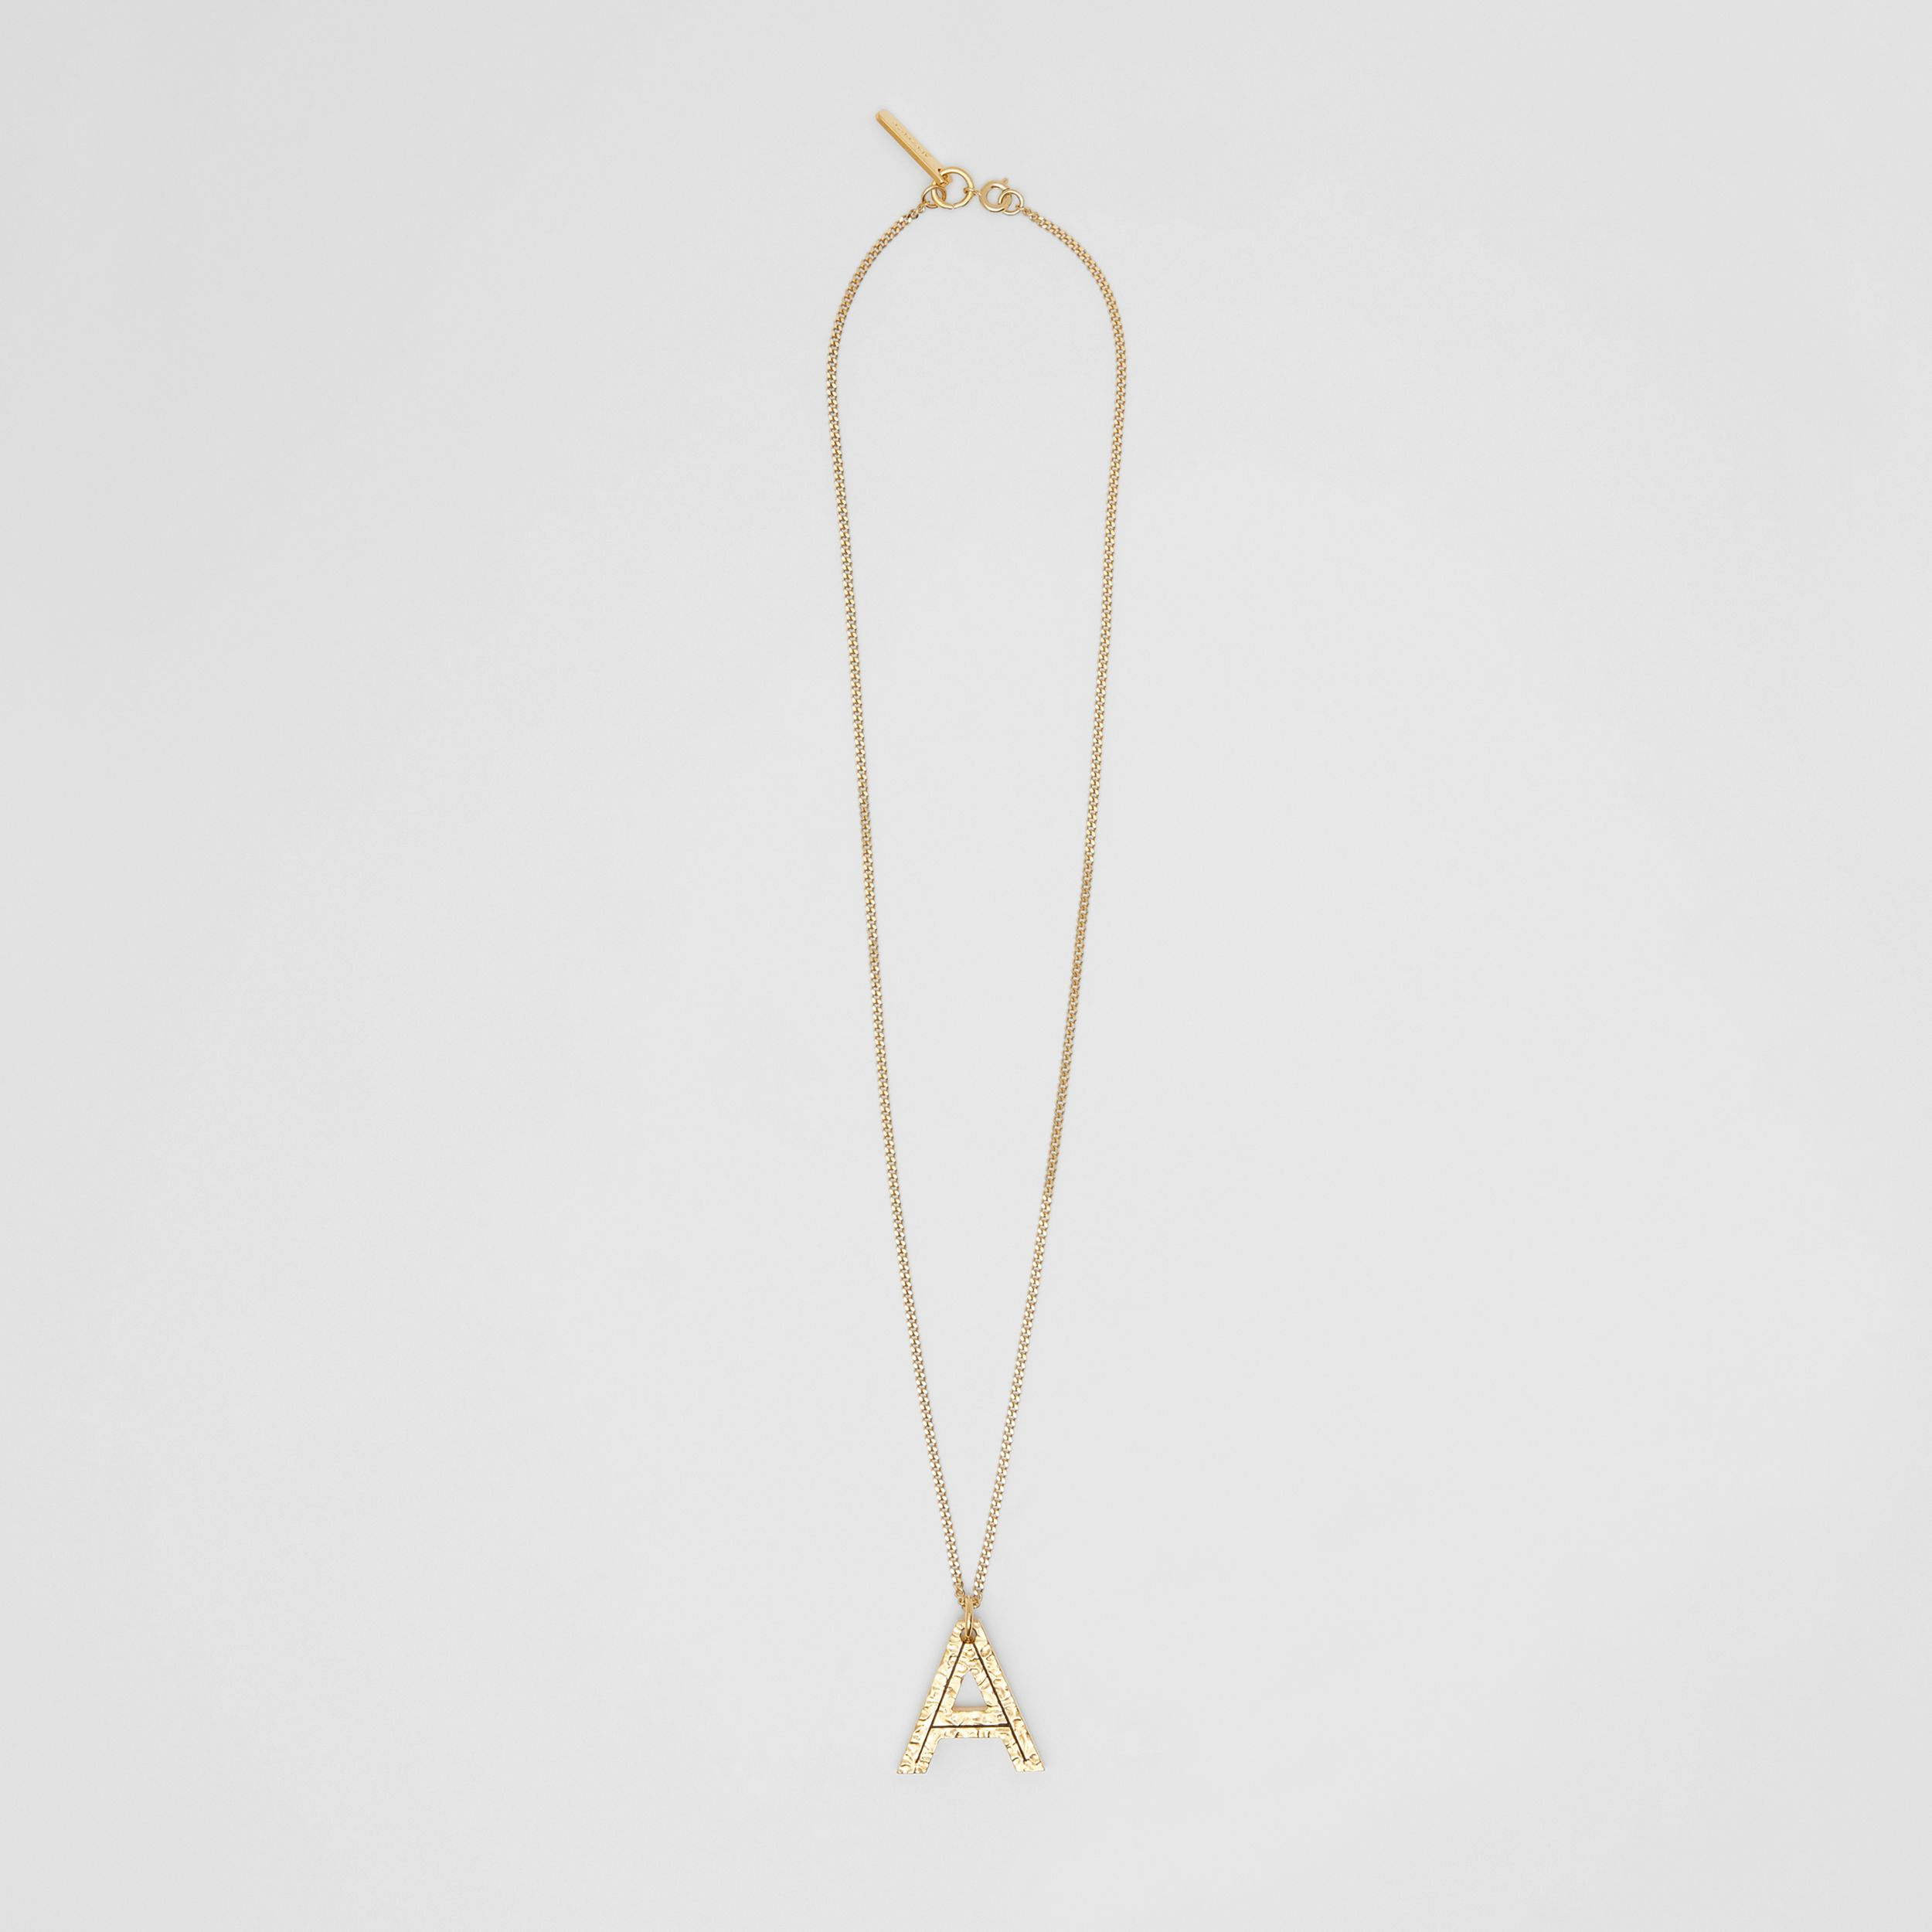 'A' Alphabet Charm Gold-plated Necklace in Light - Women | Burberry United Kingdom - 1